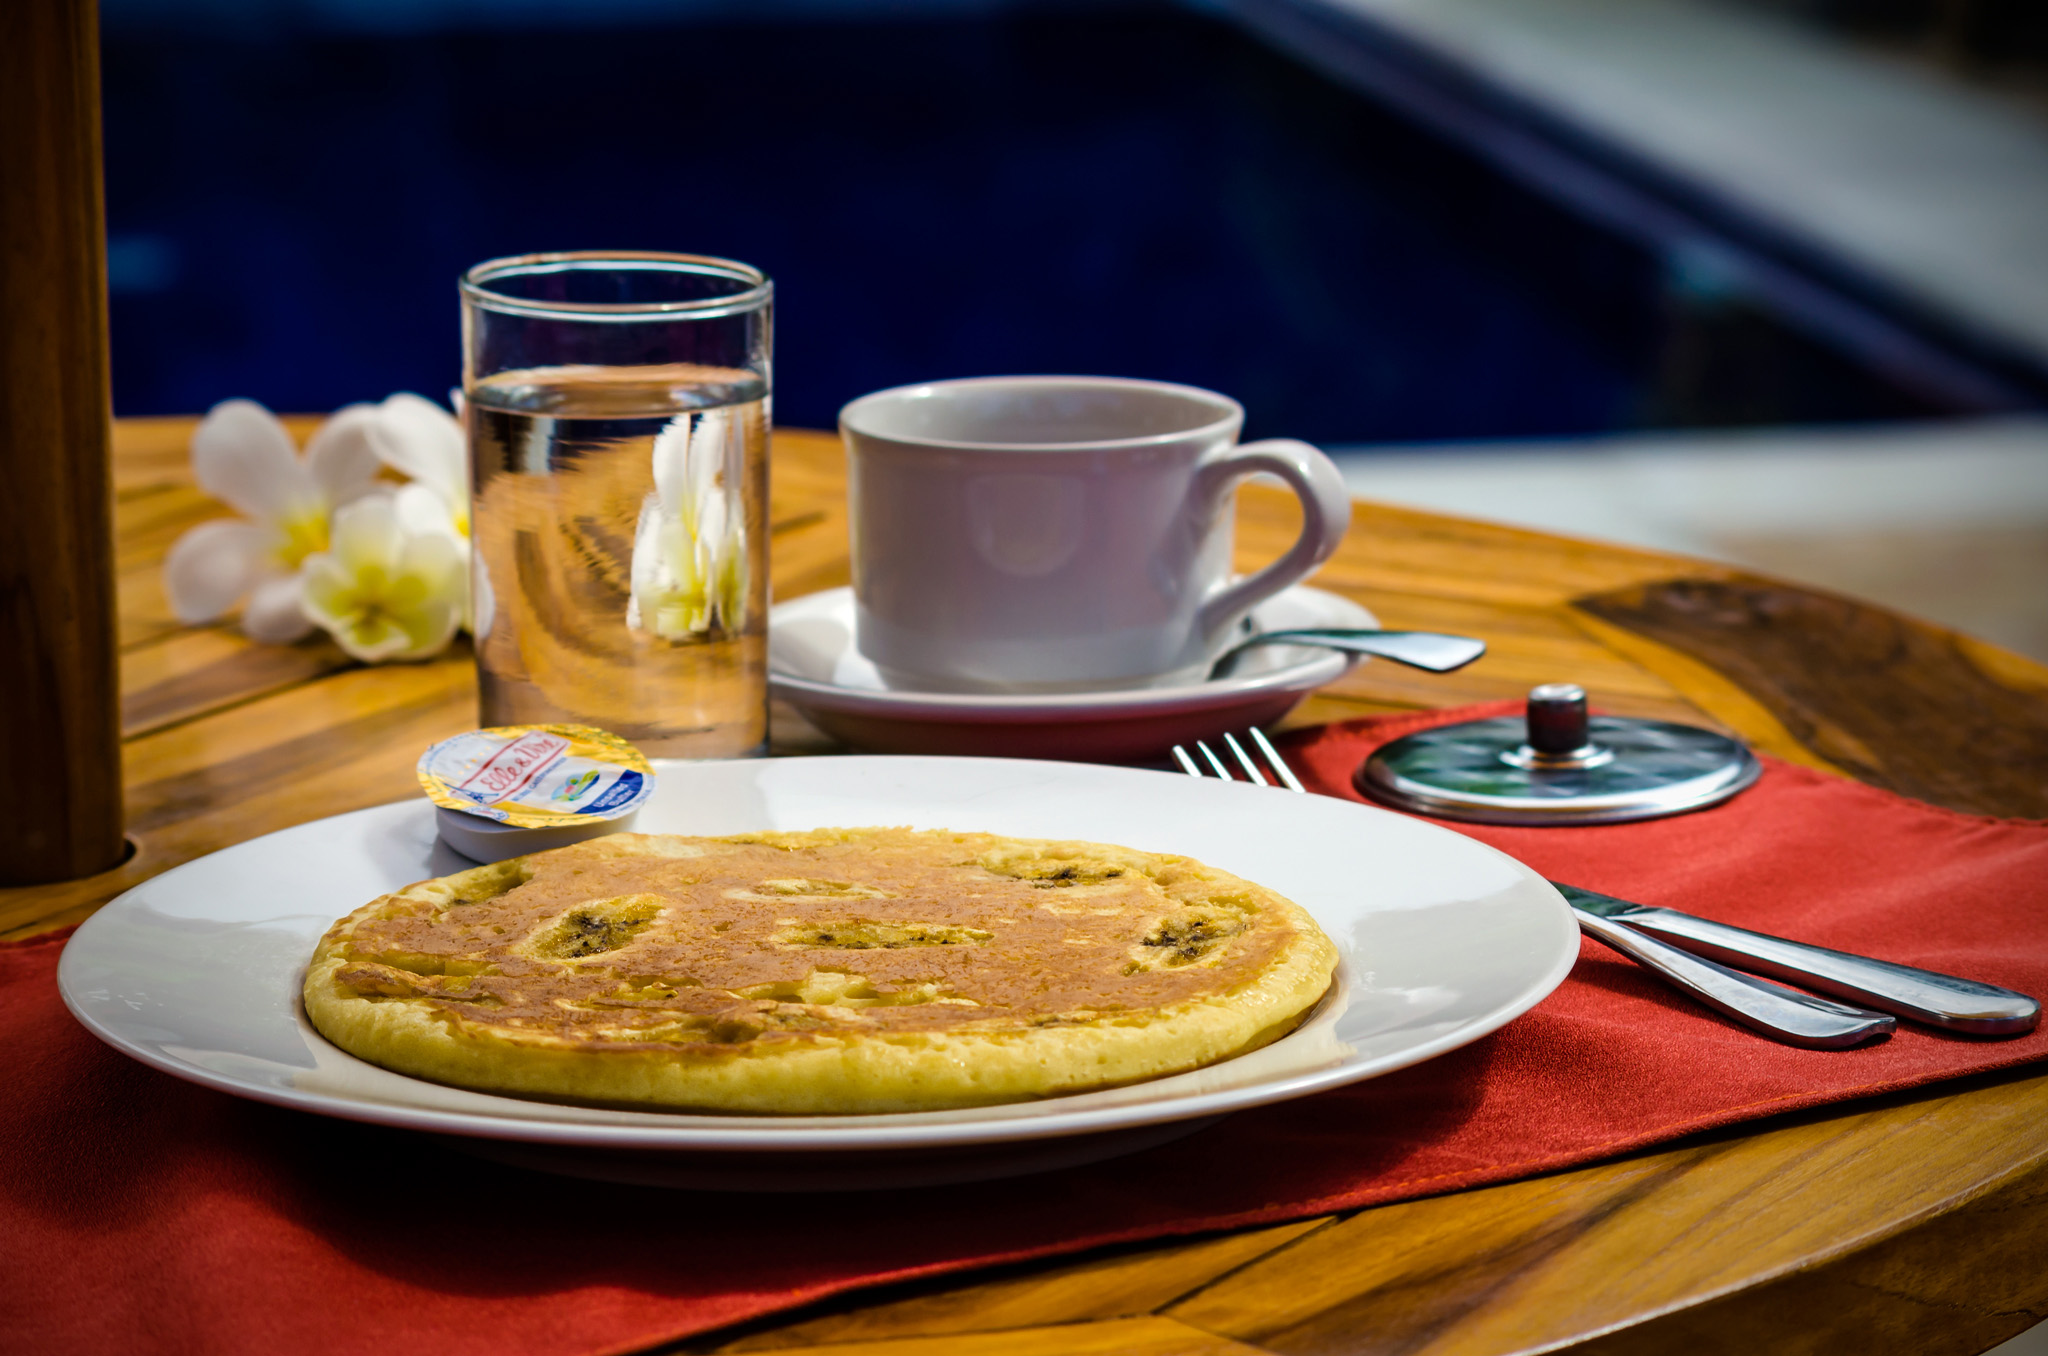 Ima Guest House Breakfast banana pancake. We prepare a list of small menus both Western and Indonesian style in case you like to stay at our guest house for lunch or dinner. All menus are fully vegetarian.